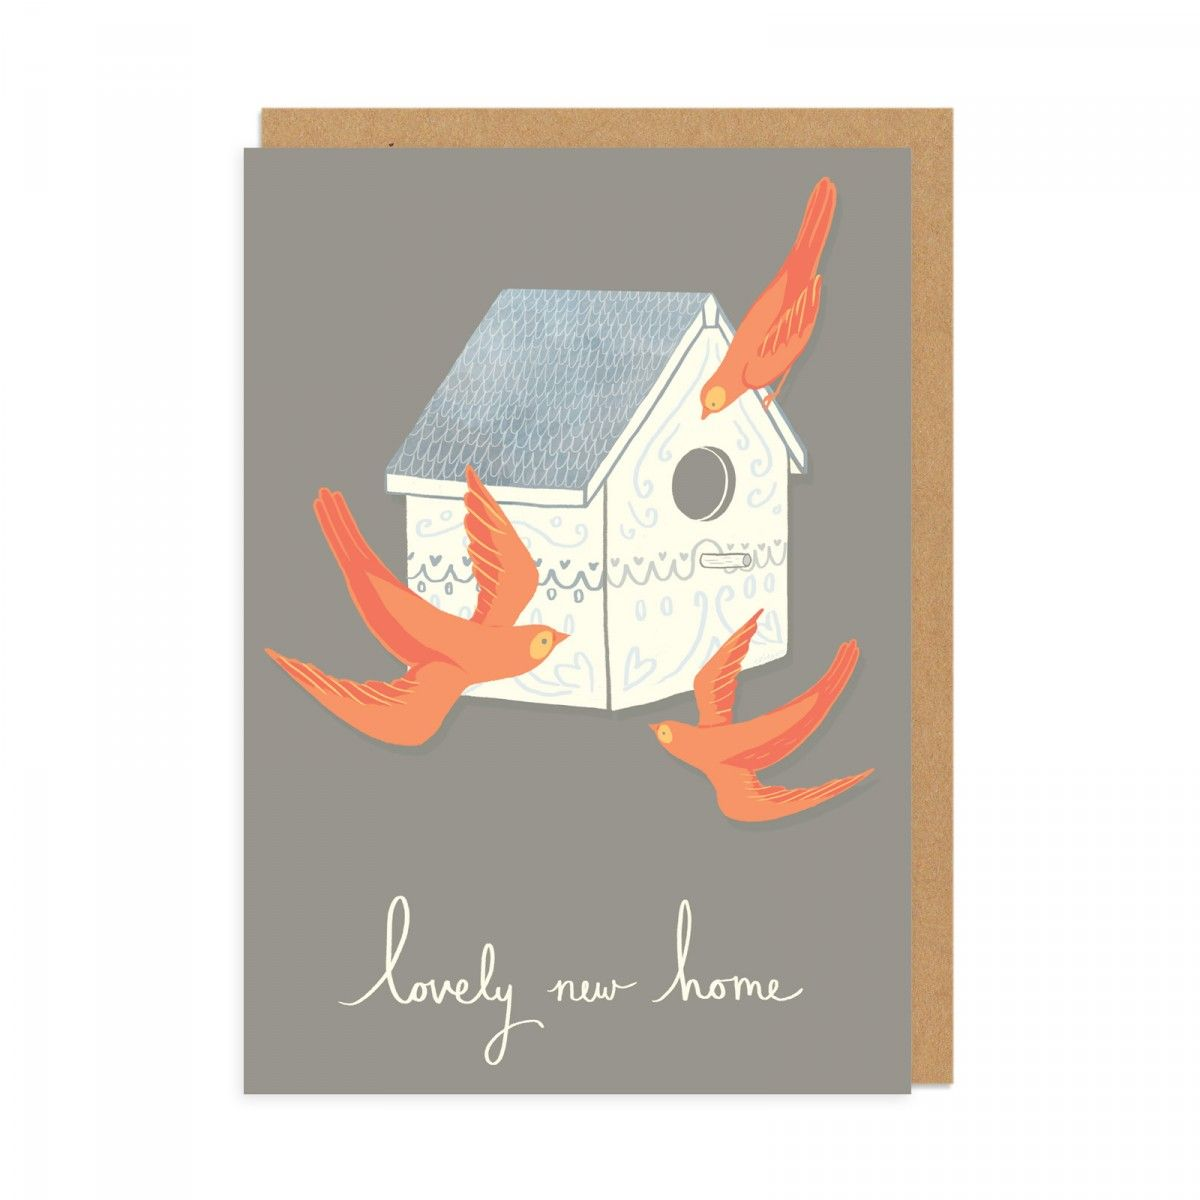 Lovely new home greeting card cards etc ohh deer cards gift lovely new home greeting card cards etc ohh deer kristyandbryce Image collections